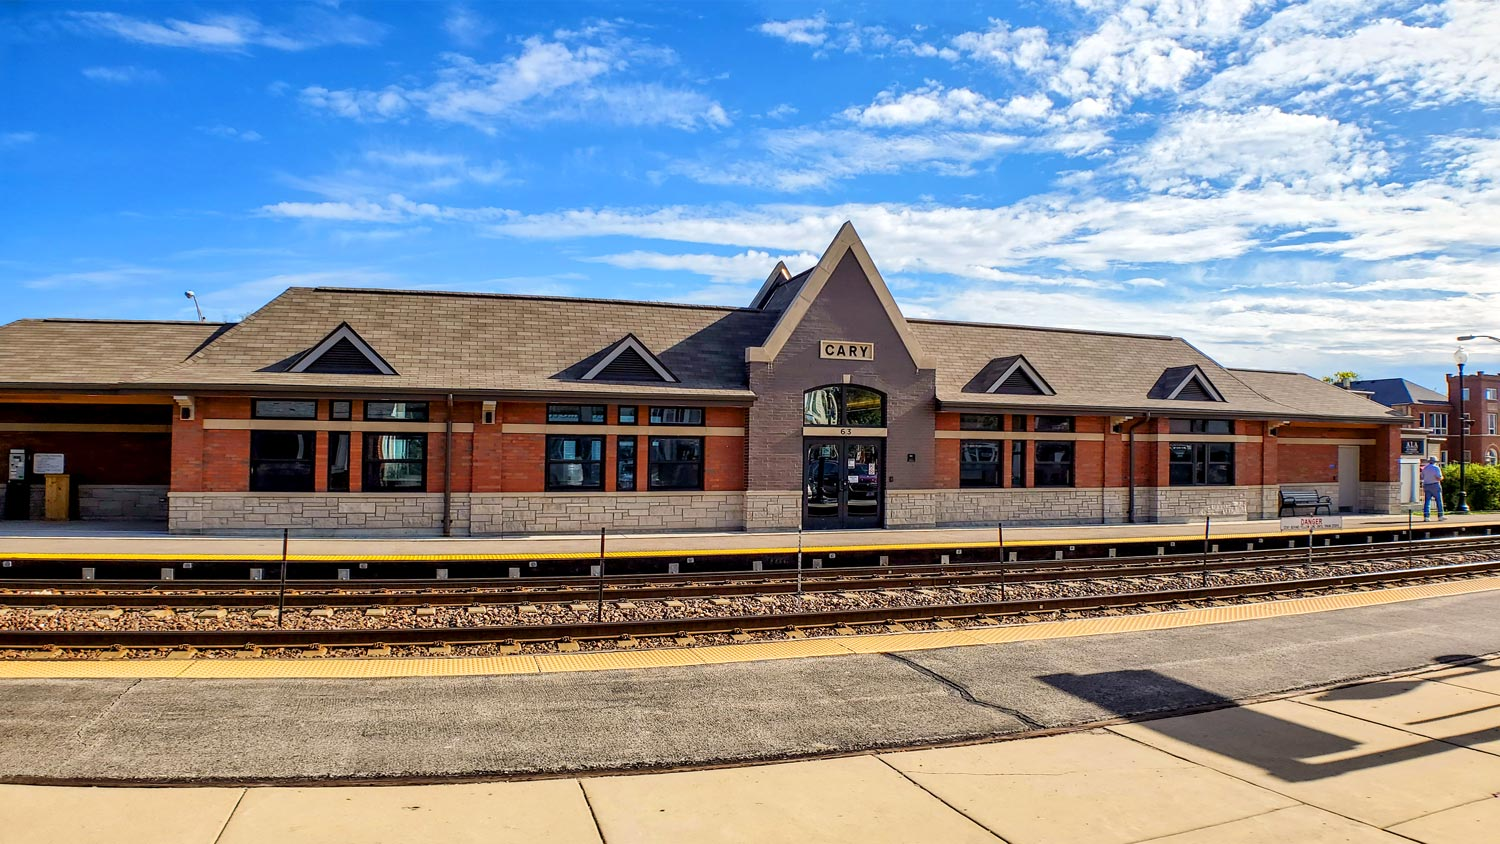 New Cary Metra Station, completed in 2019.